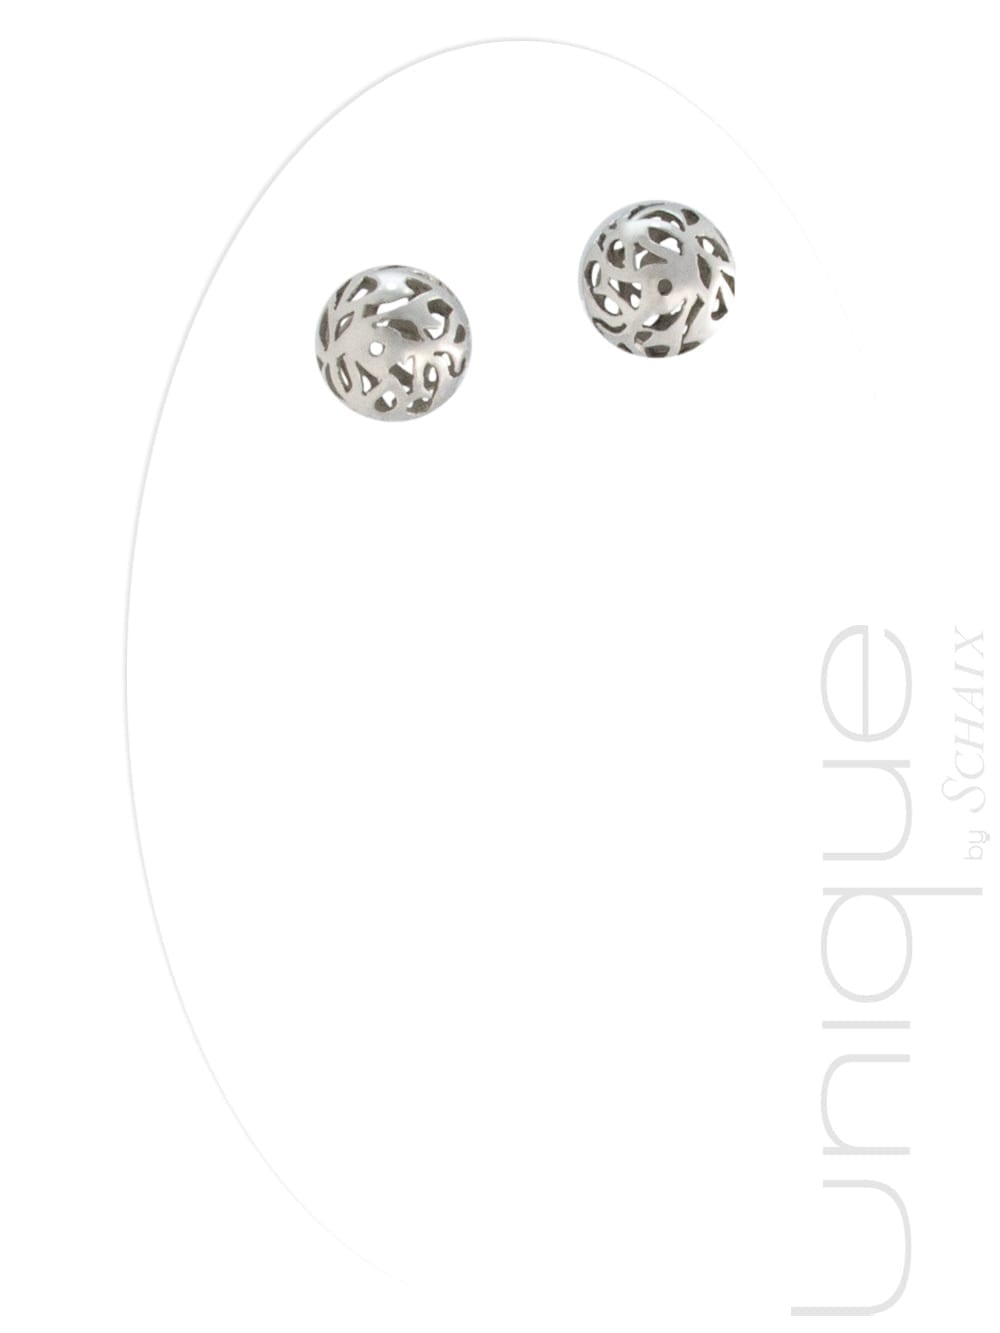 Silver earrings, carved beads